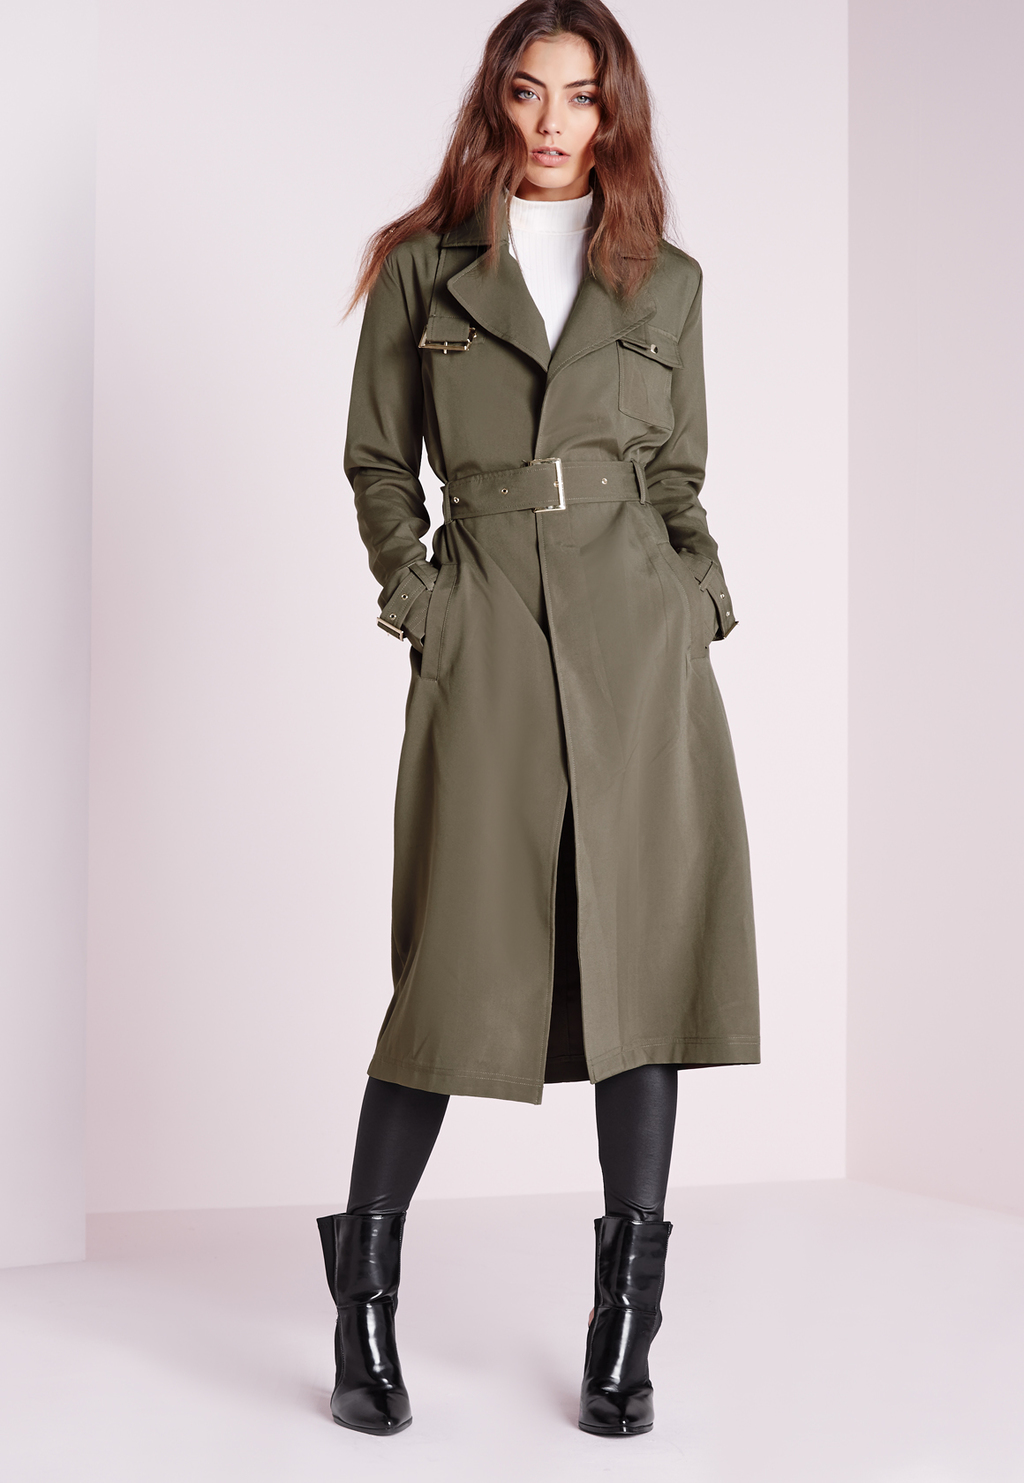 Military Trench Coat Khaki, Beige - pattern: plain; style: trench coat; fit: slim fit; collar: standard lapel/rever collar; length: calf length; predominant colour: khaki; occasions: casual; fibres: polyester/polyamide - stretch; waist detail: belted waist/tie at waist/drawstring; sleeve length: long sleeve; sleeve style: standard; collar break: medium; pattern type: fabric; texture group: other - light to midweight; season: s/s 2016